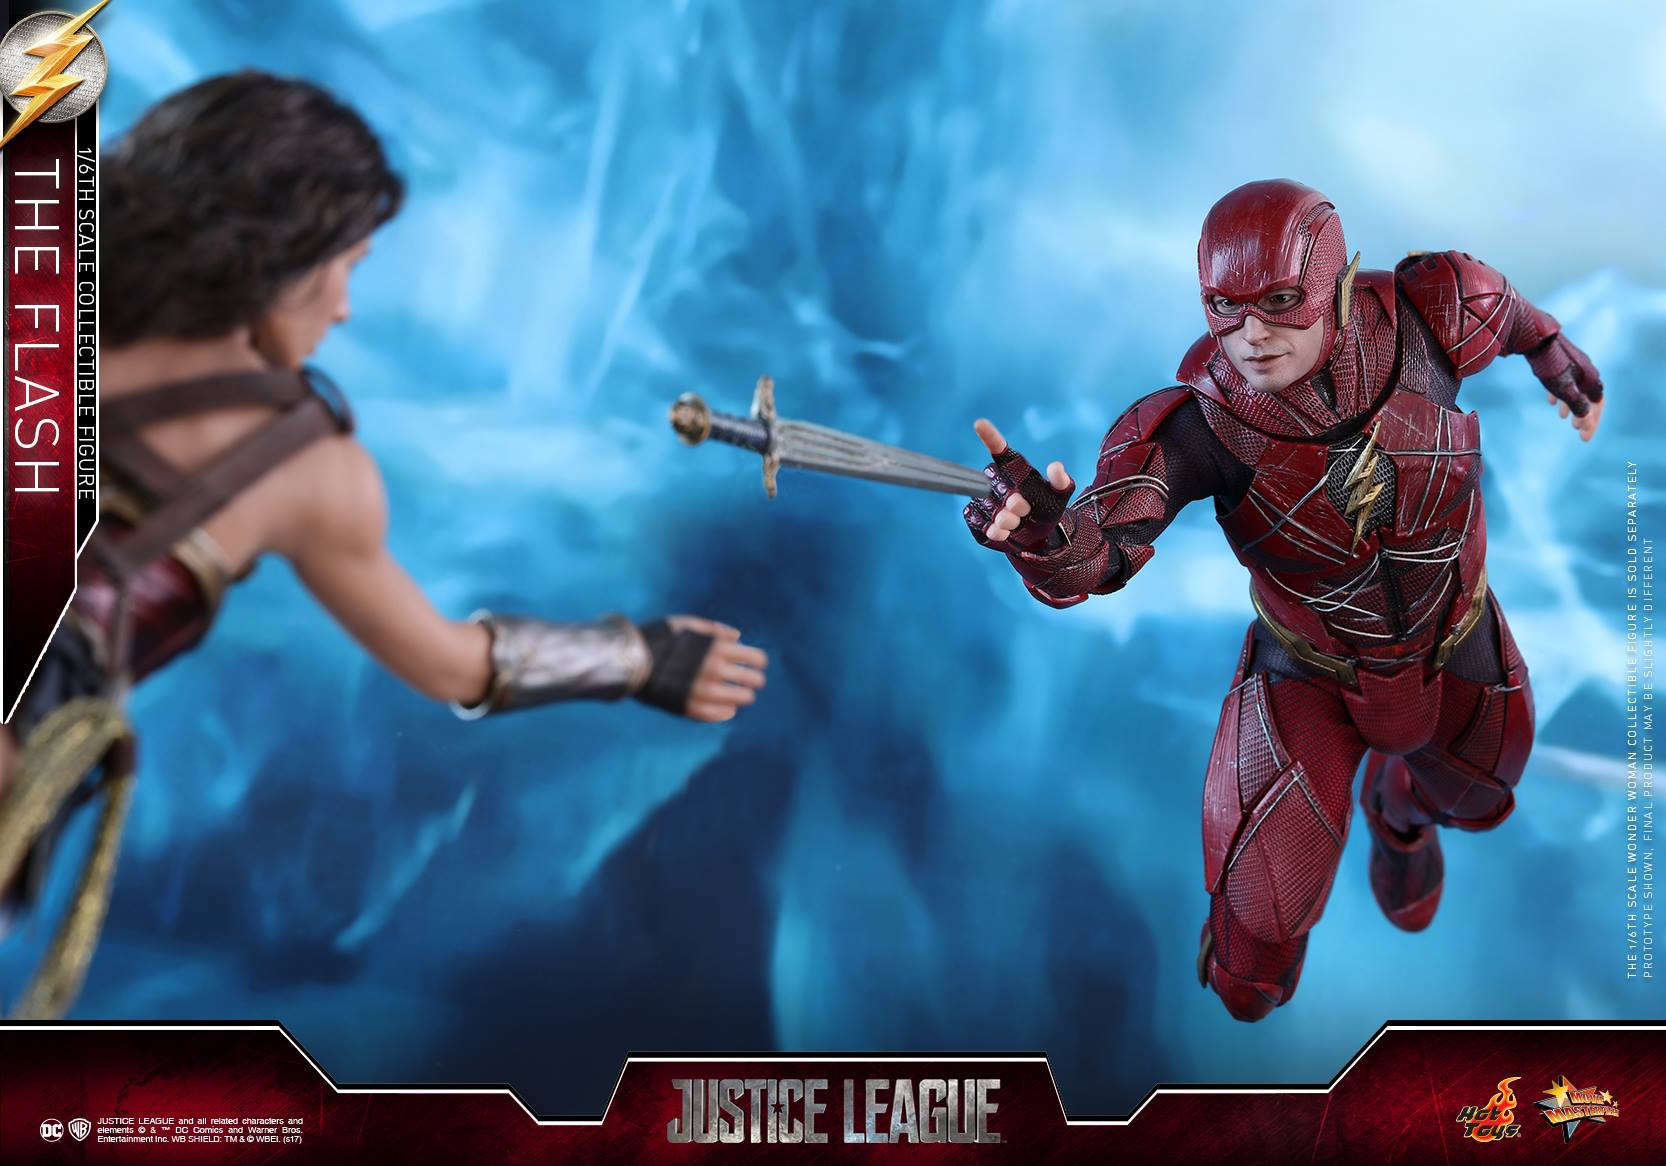 Hot-Toys-Justice-League-The-Flash-005